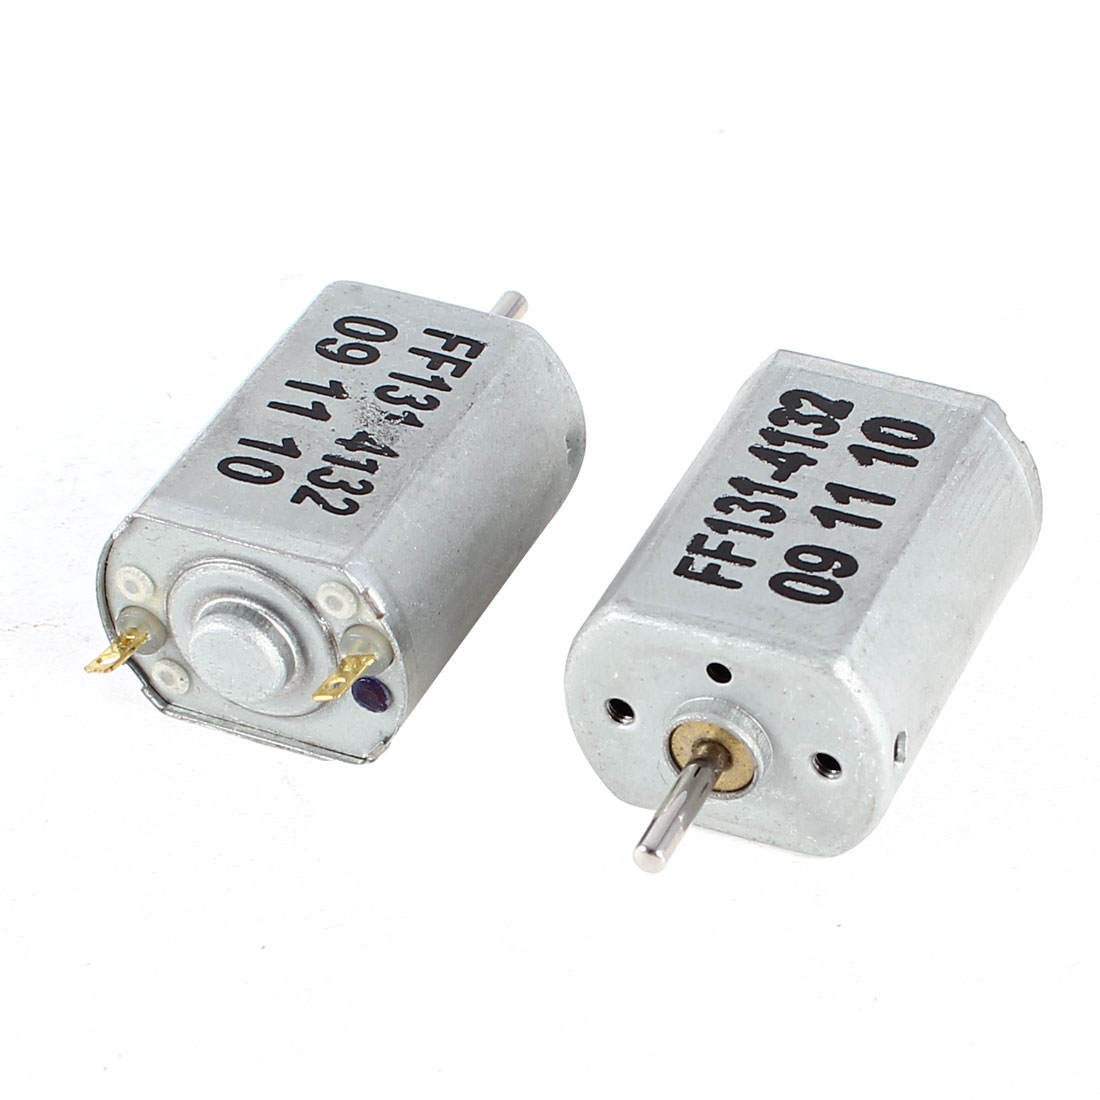 Silver-Tone-8000R-Min-2mm-Shaft-DC-3V-High-Torque-Mini-Micro-Motor-2-Pcs